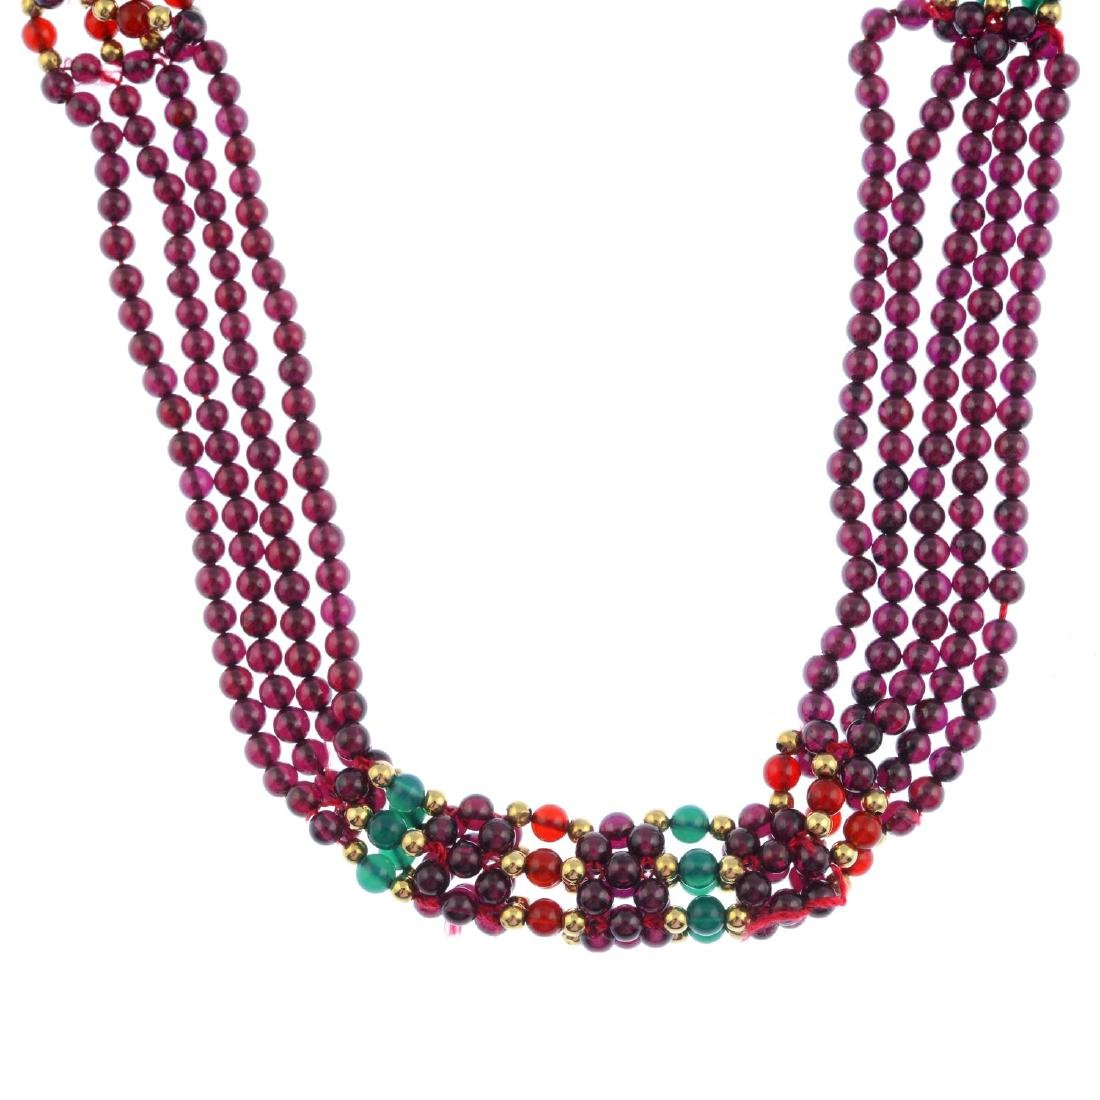 A garnet bead necklace. Comprising five strands of